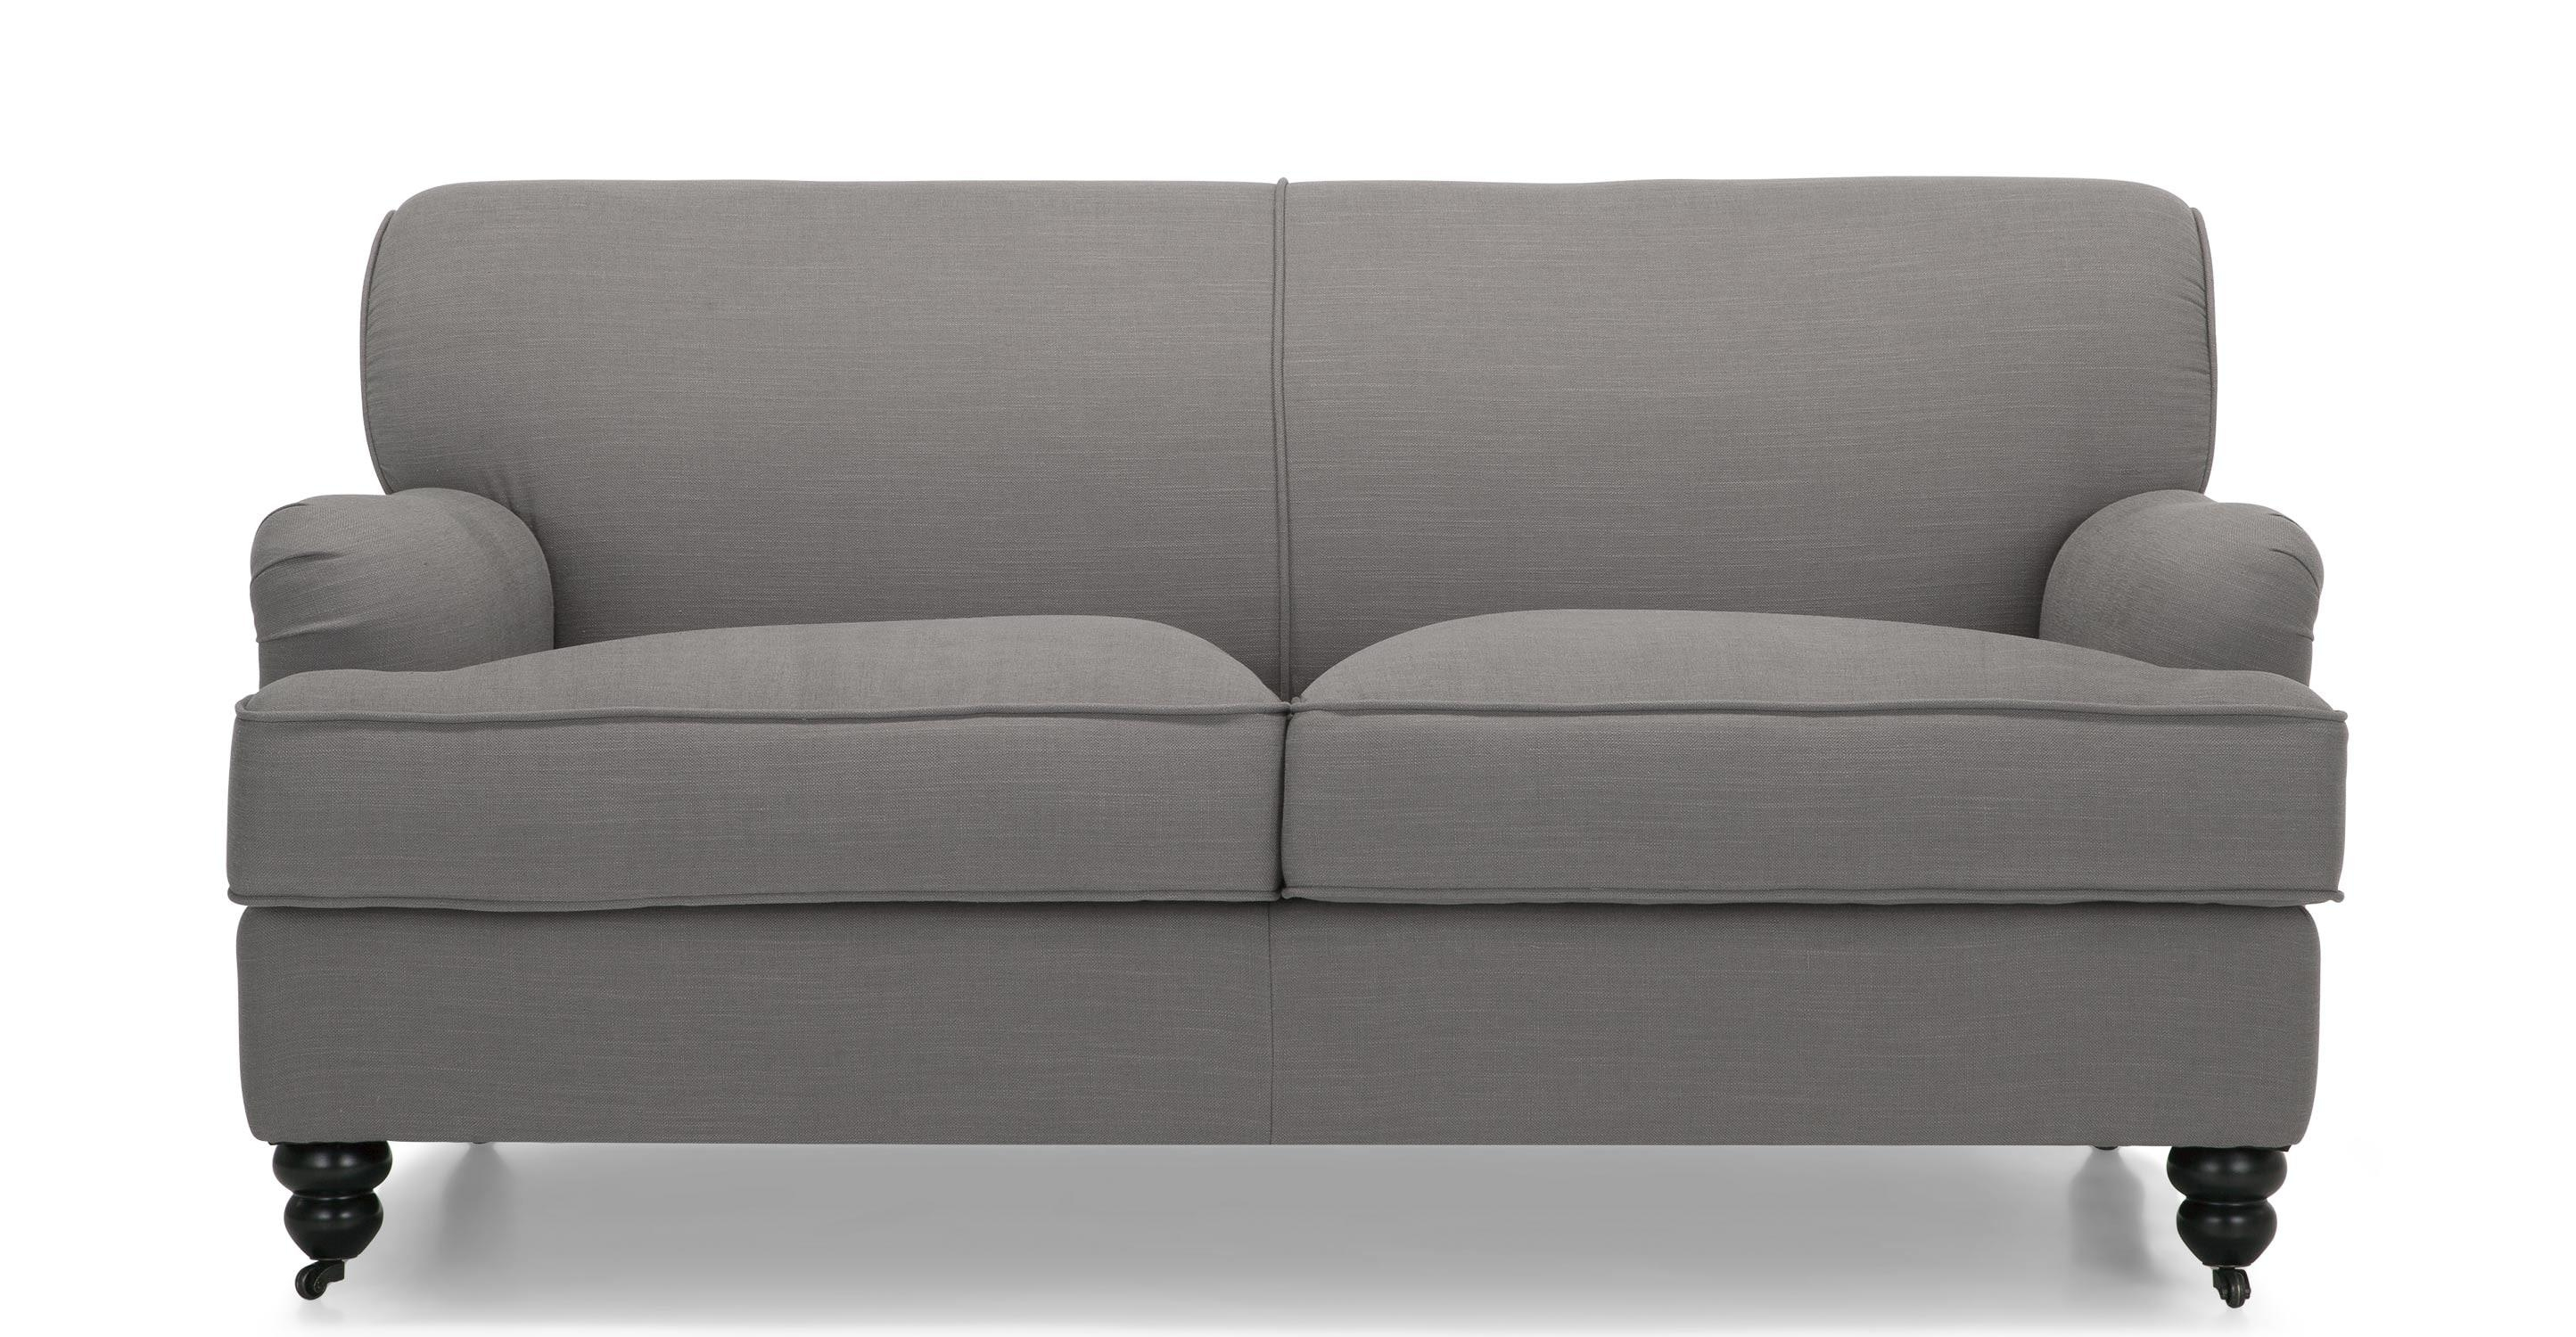 Sofas Center : Stupendous Small Seater Sofa Image Concept Sofas With Regard To Small 2 Seater Sofas (Image 20 of 20)